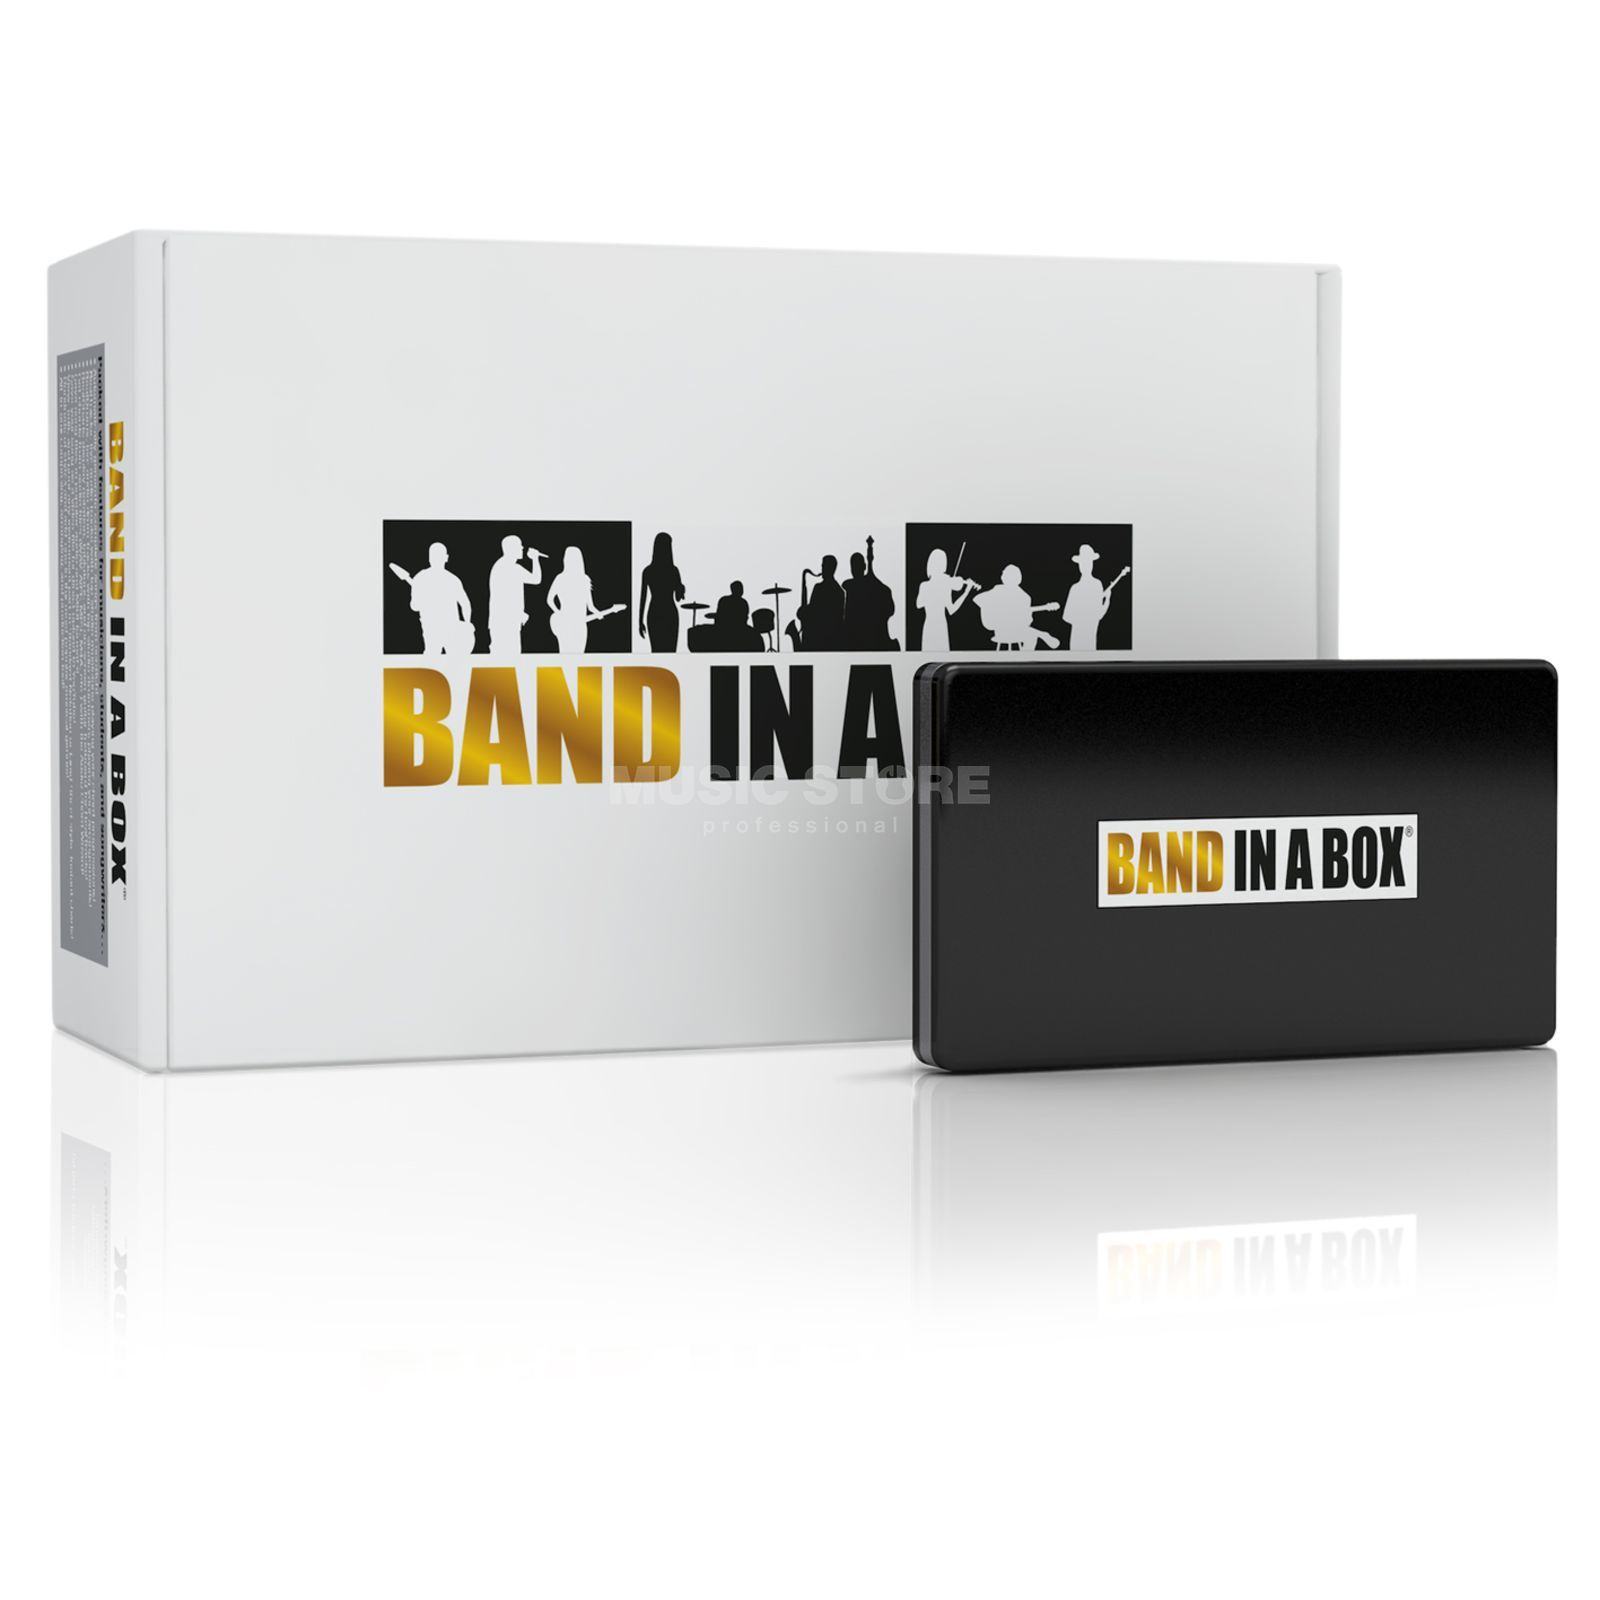 PG Music Band-in-a-Box 2018 Audiophile deutsch, PC Product Image